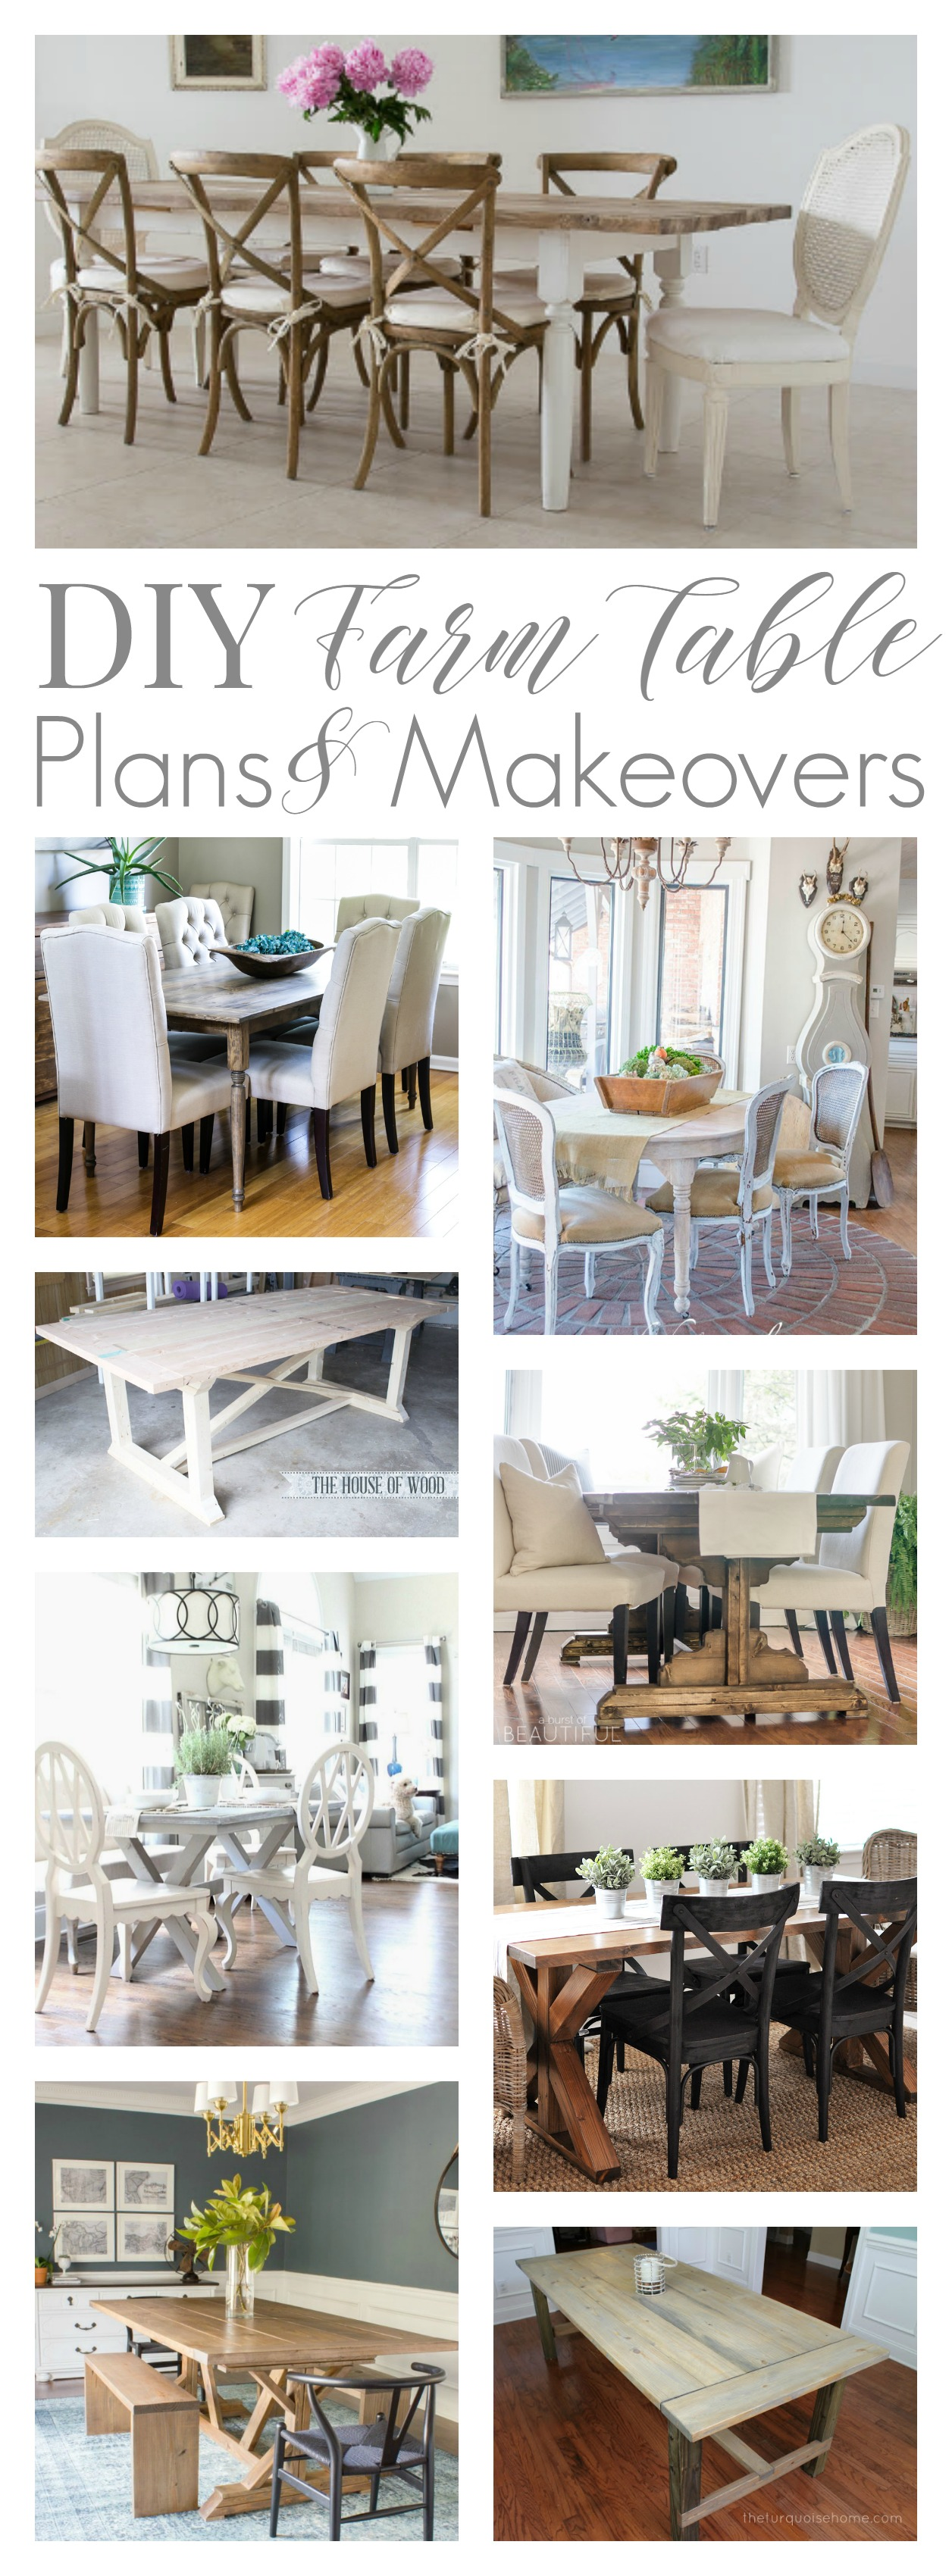 Free Farm Table Tutorial Build Plans and DIY Makeover Ideas